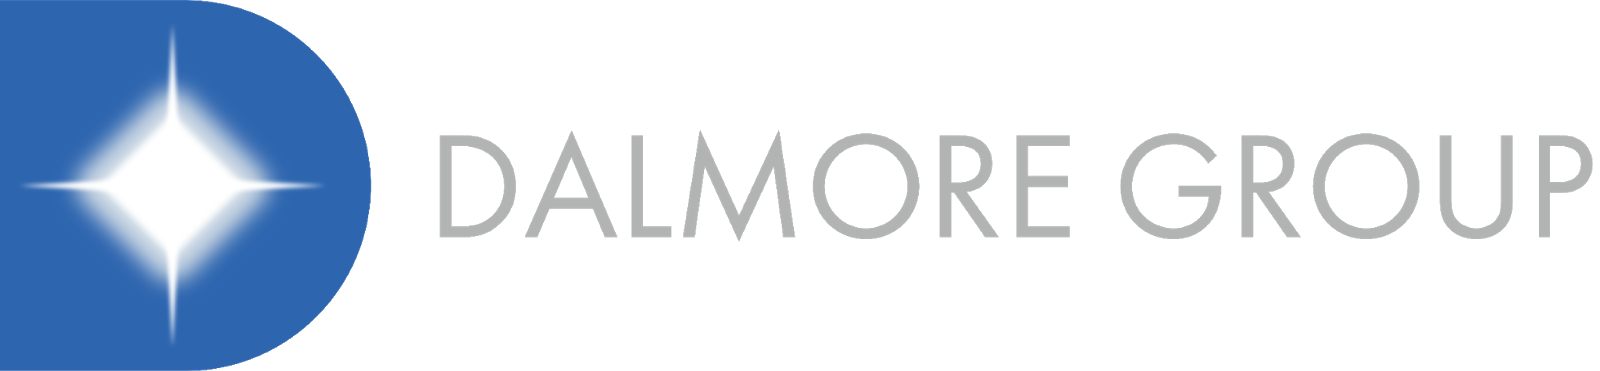 Dalmore Group Teams with Global Wine Marketplace Vinsent for Direct Reg CF Offering 1